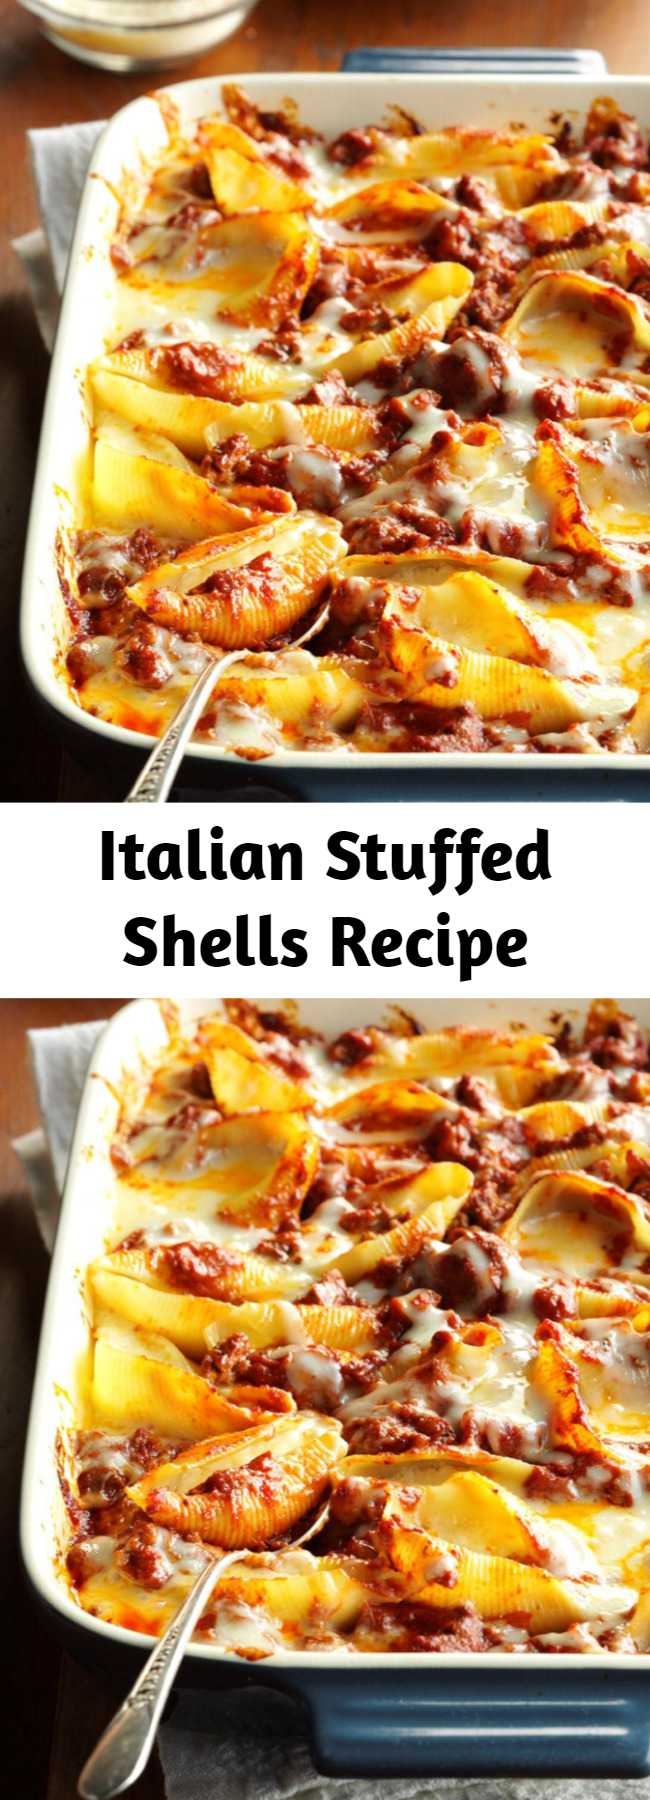 Italian Stuffed Shells Recipe - A dear friend first brought over this stuffed shells recipe. Now I take it to other friends' homes and to potlucks, because it's always a big hit! Simple and delicious.